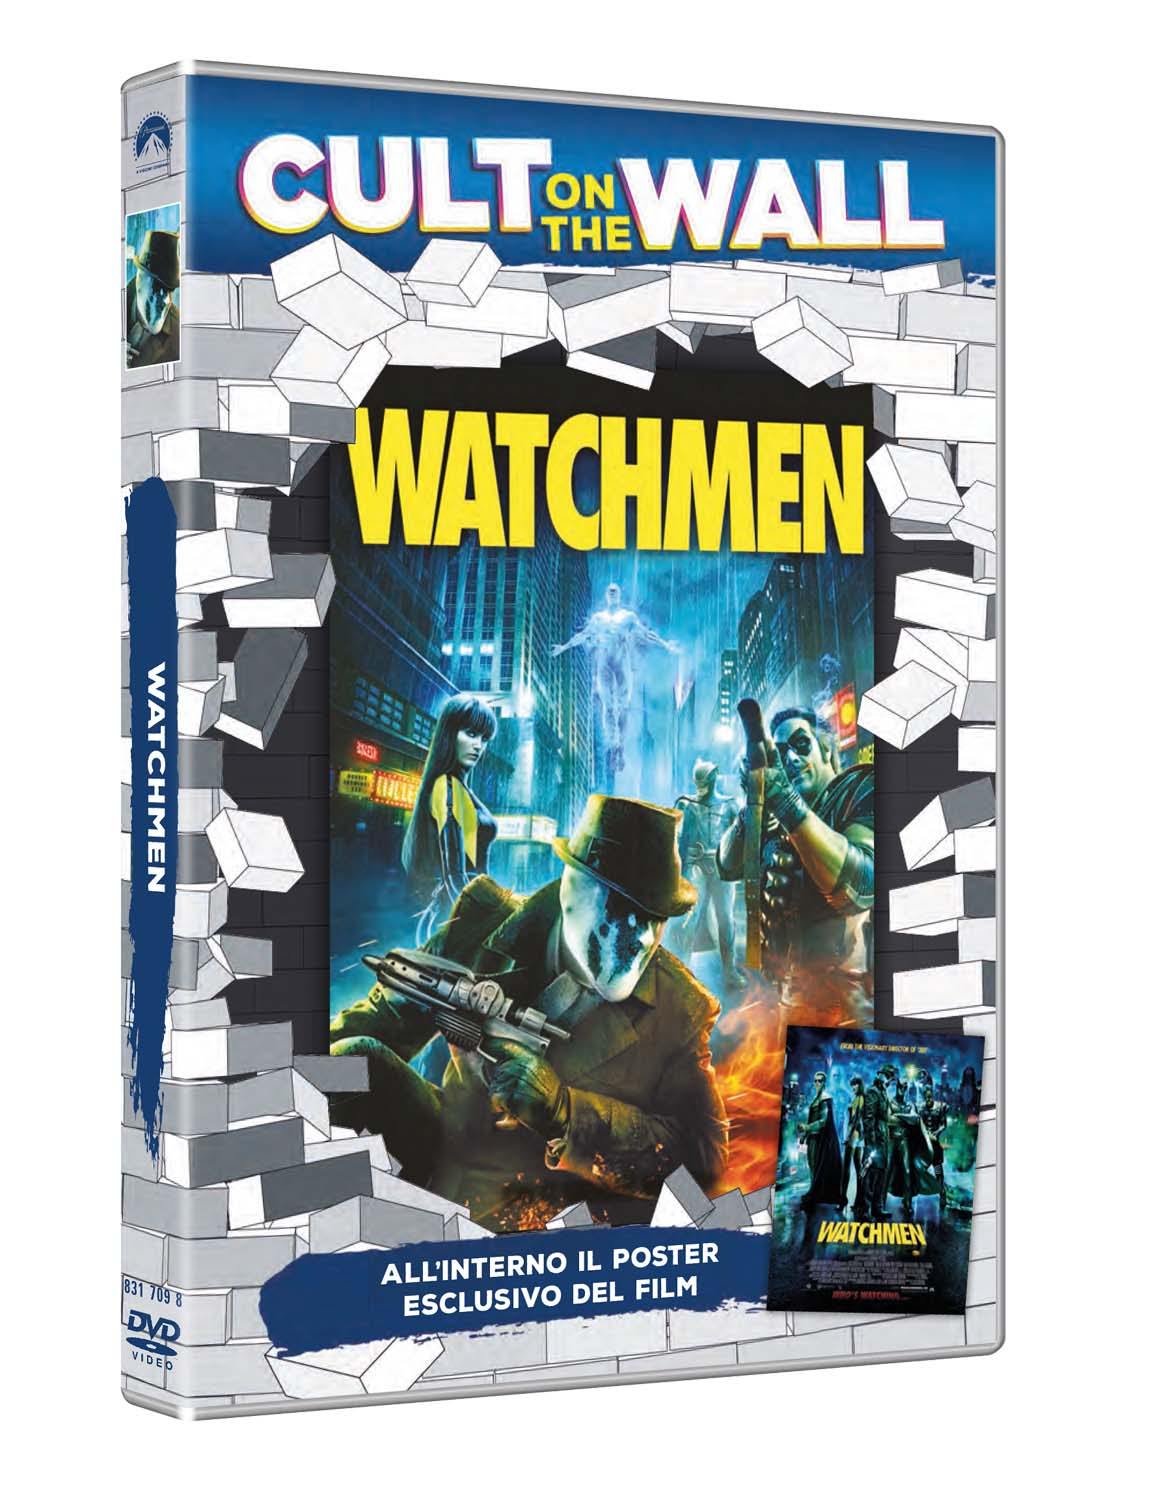 WATCHMEN (CULT ON THE WALL) (DVD+POSTER) (DVD)